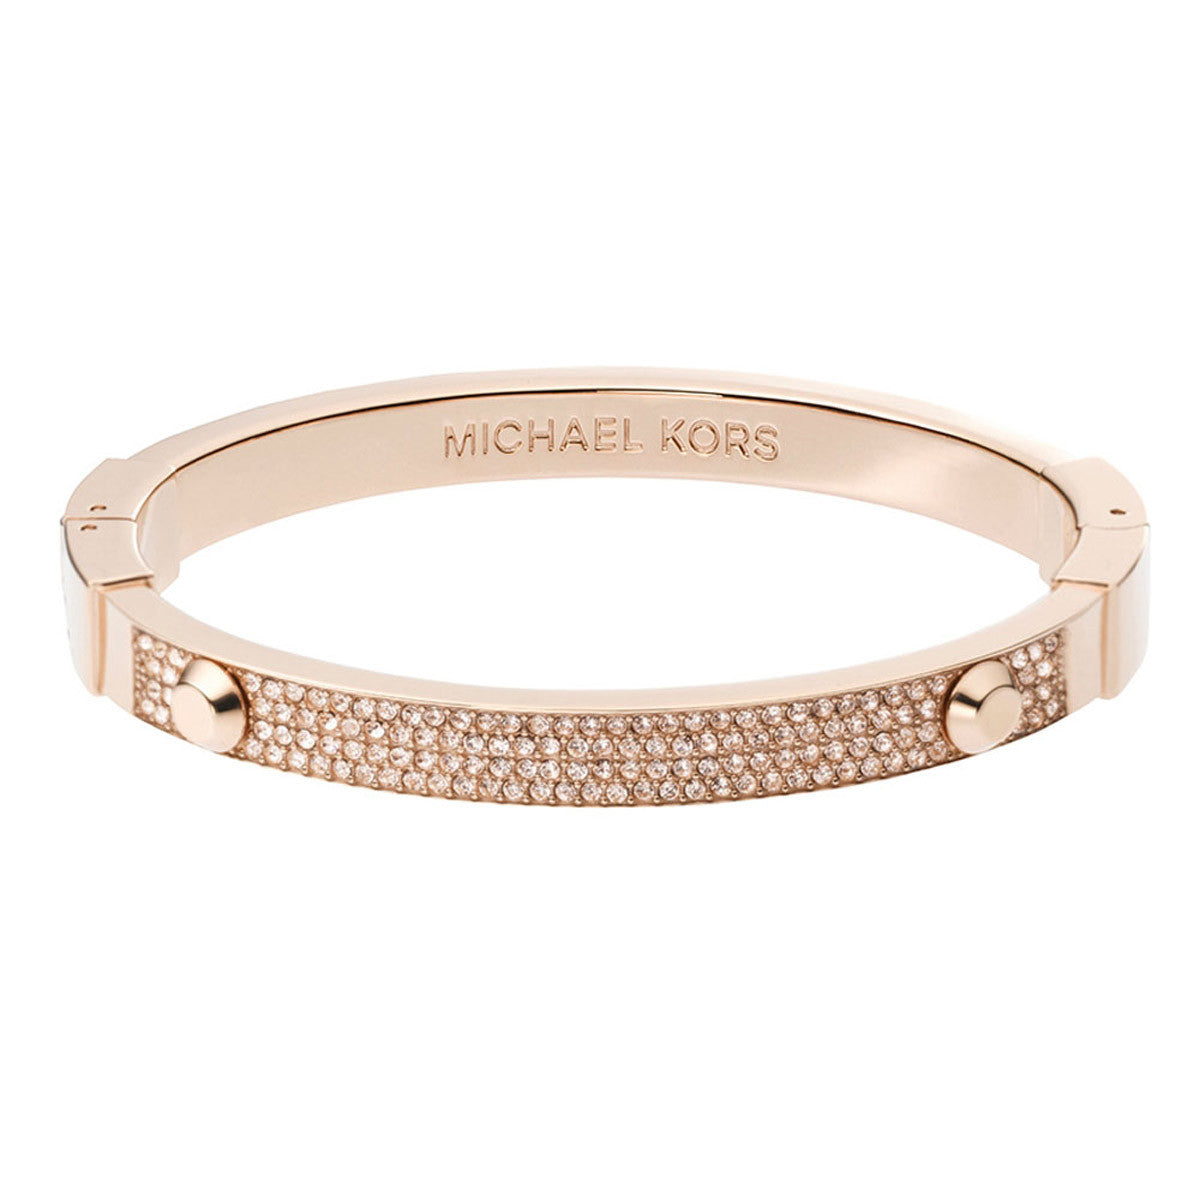 Michael Kors MKJ2747791 Women's Astor Crystal Pave Rose Gold Steel Bangle Bracelet